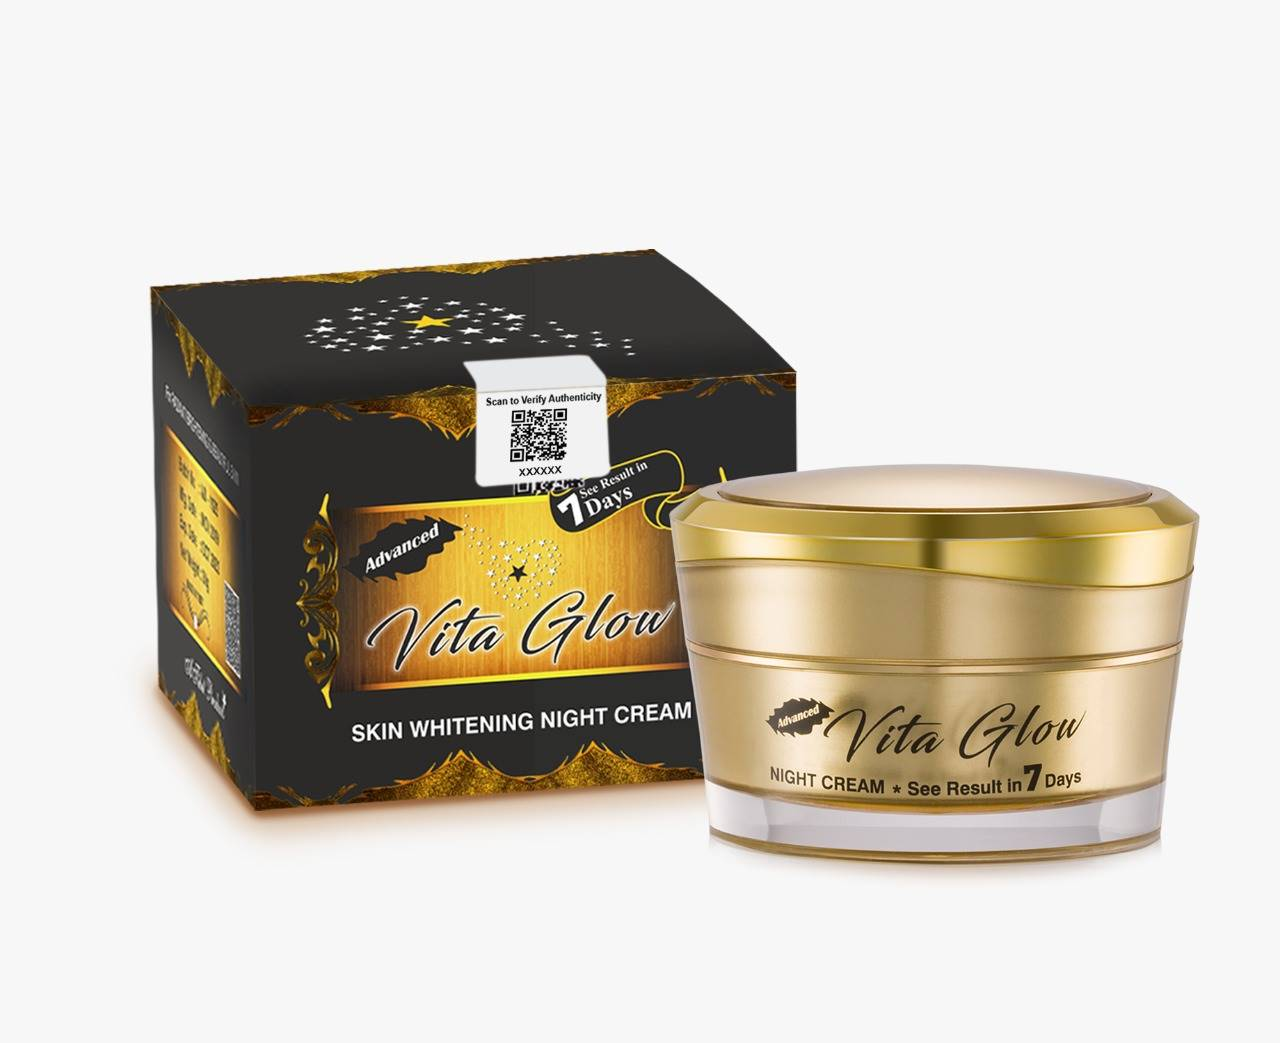 Advanced Vita Glow Glutathione Skin Whitening Night Cream | Healthcare Beauty